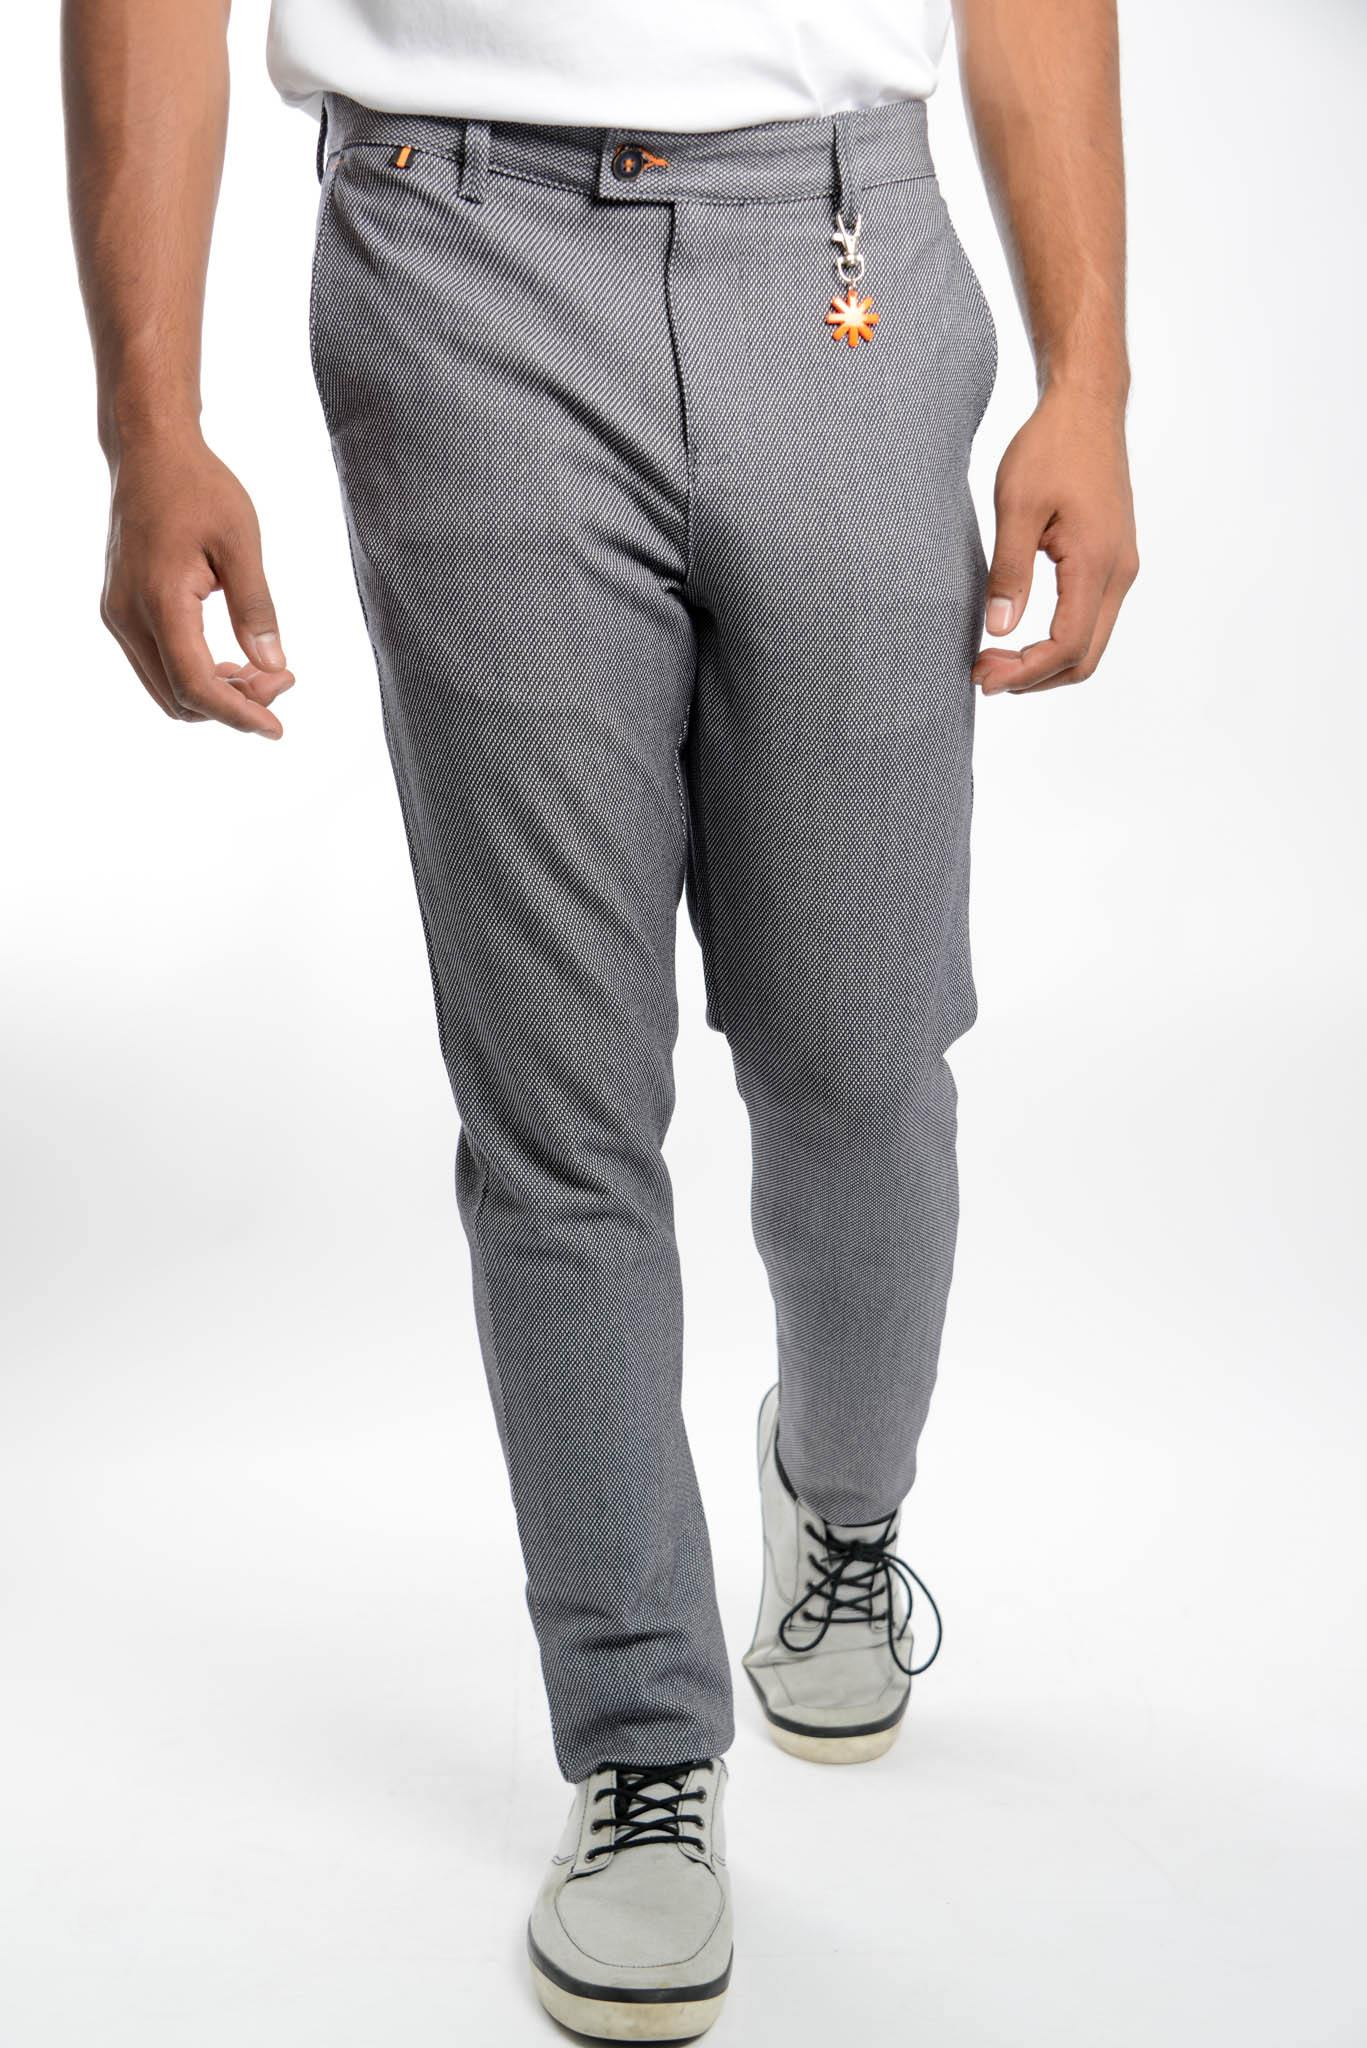 Euro All Season Trouser - Haight & Ashbury